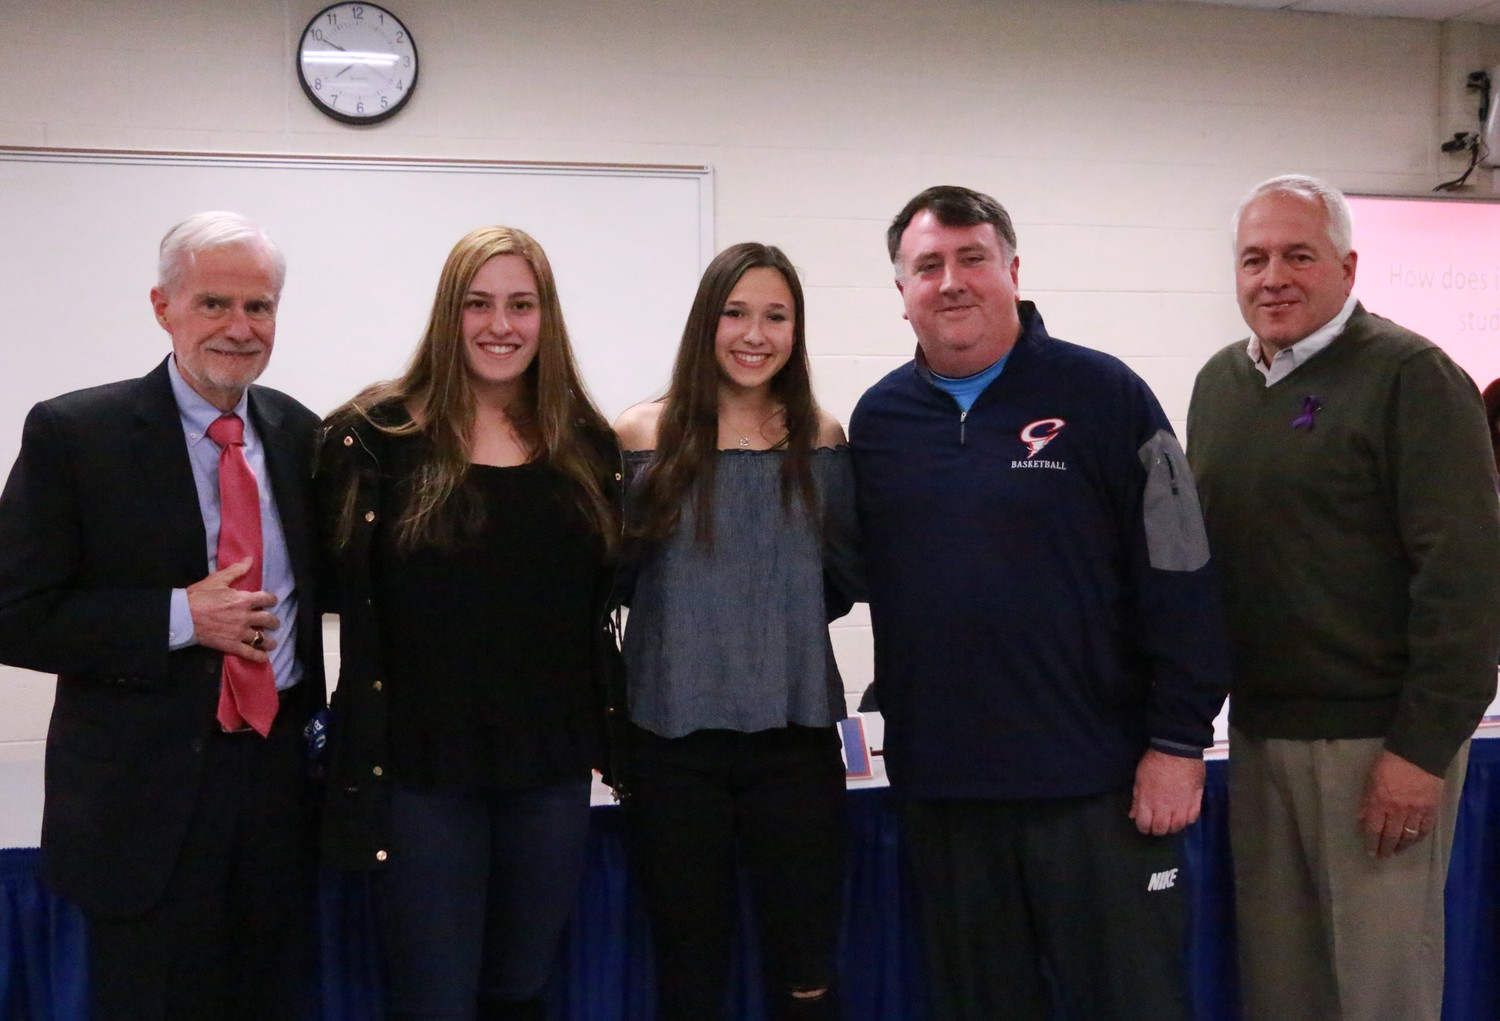 Gianna Mauro and Jenna Lopez, with their coach, were honored.